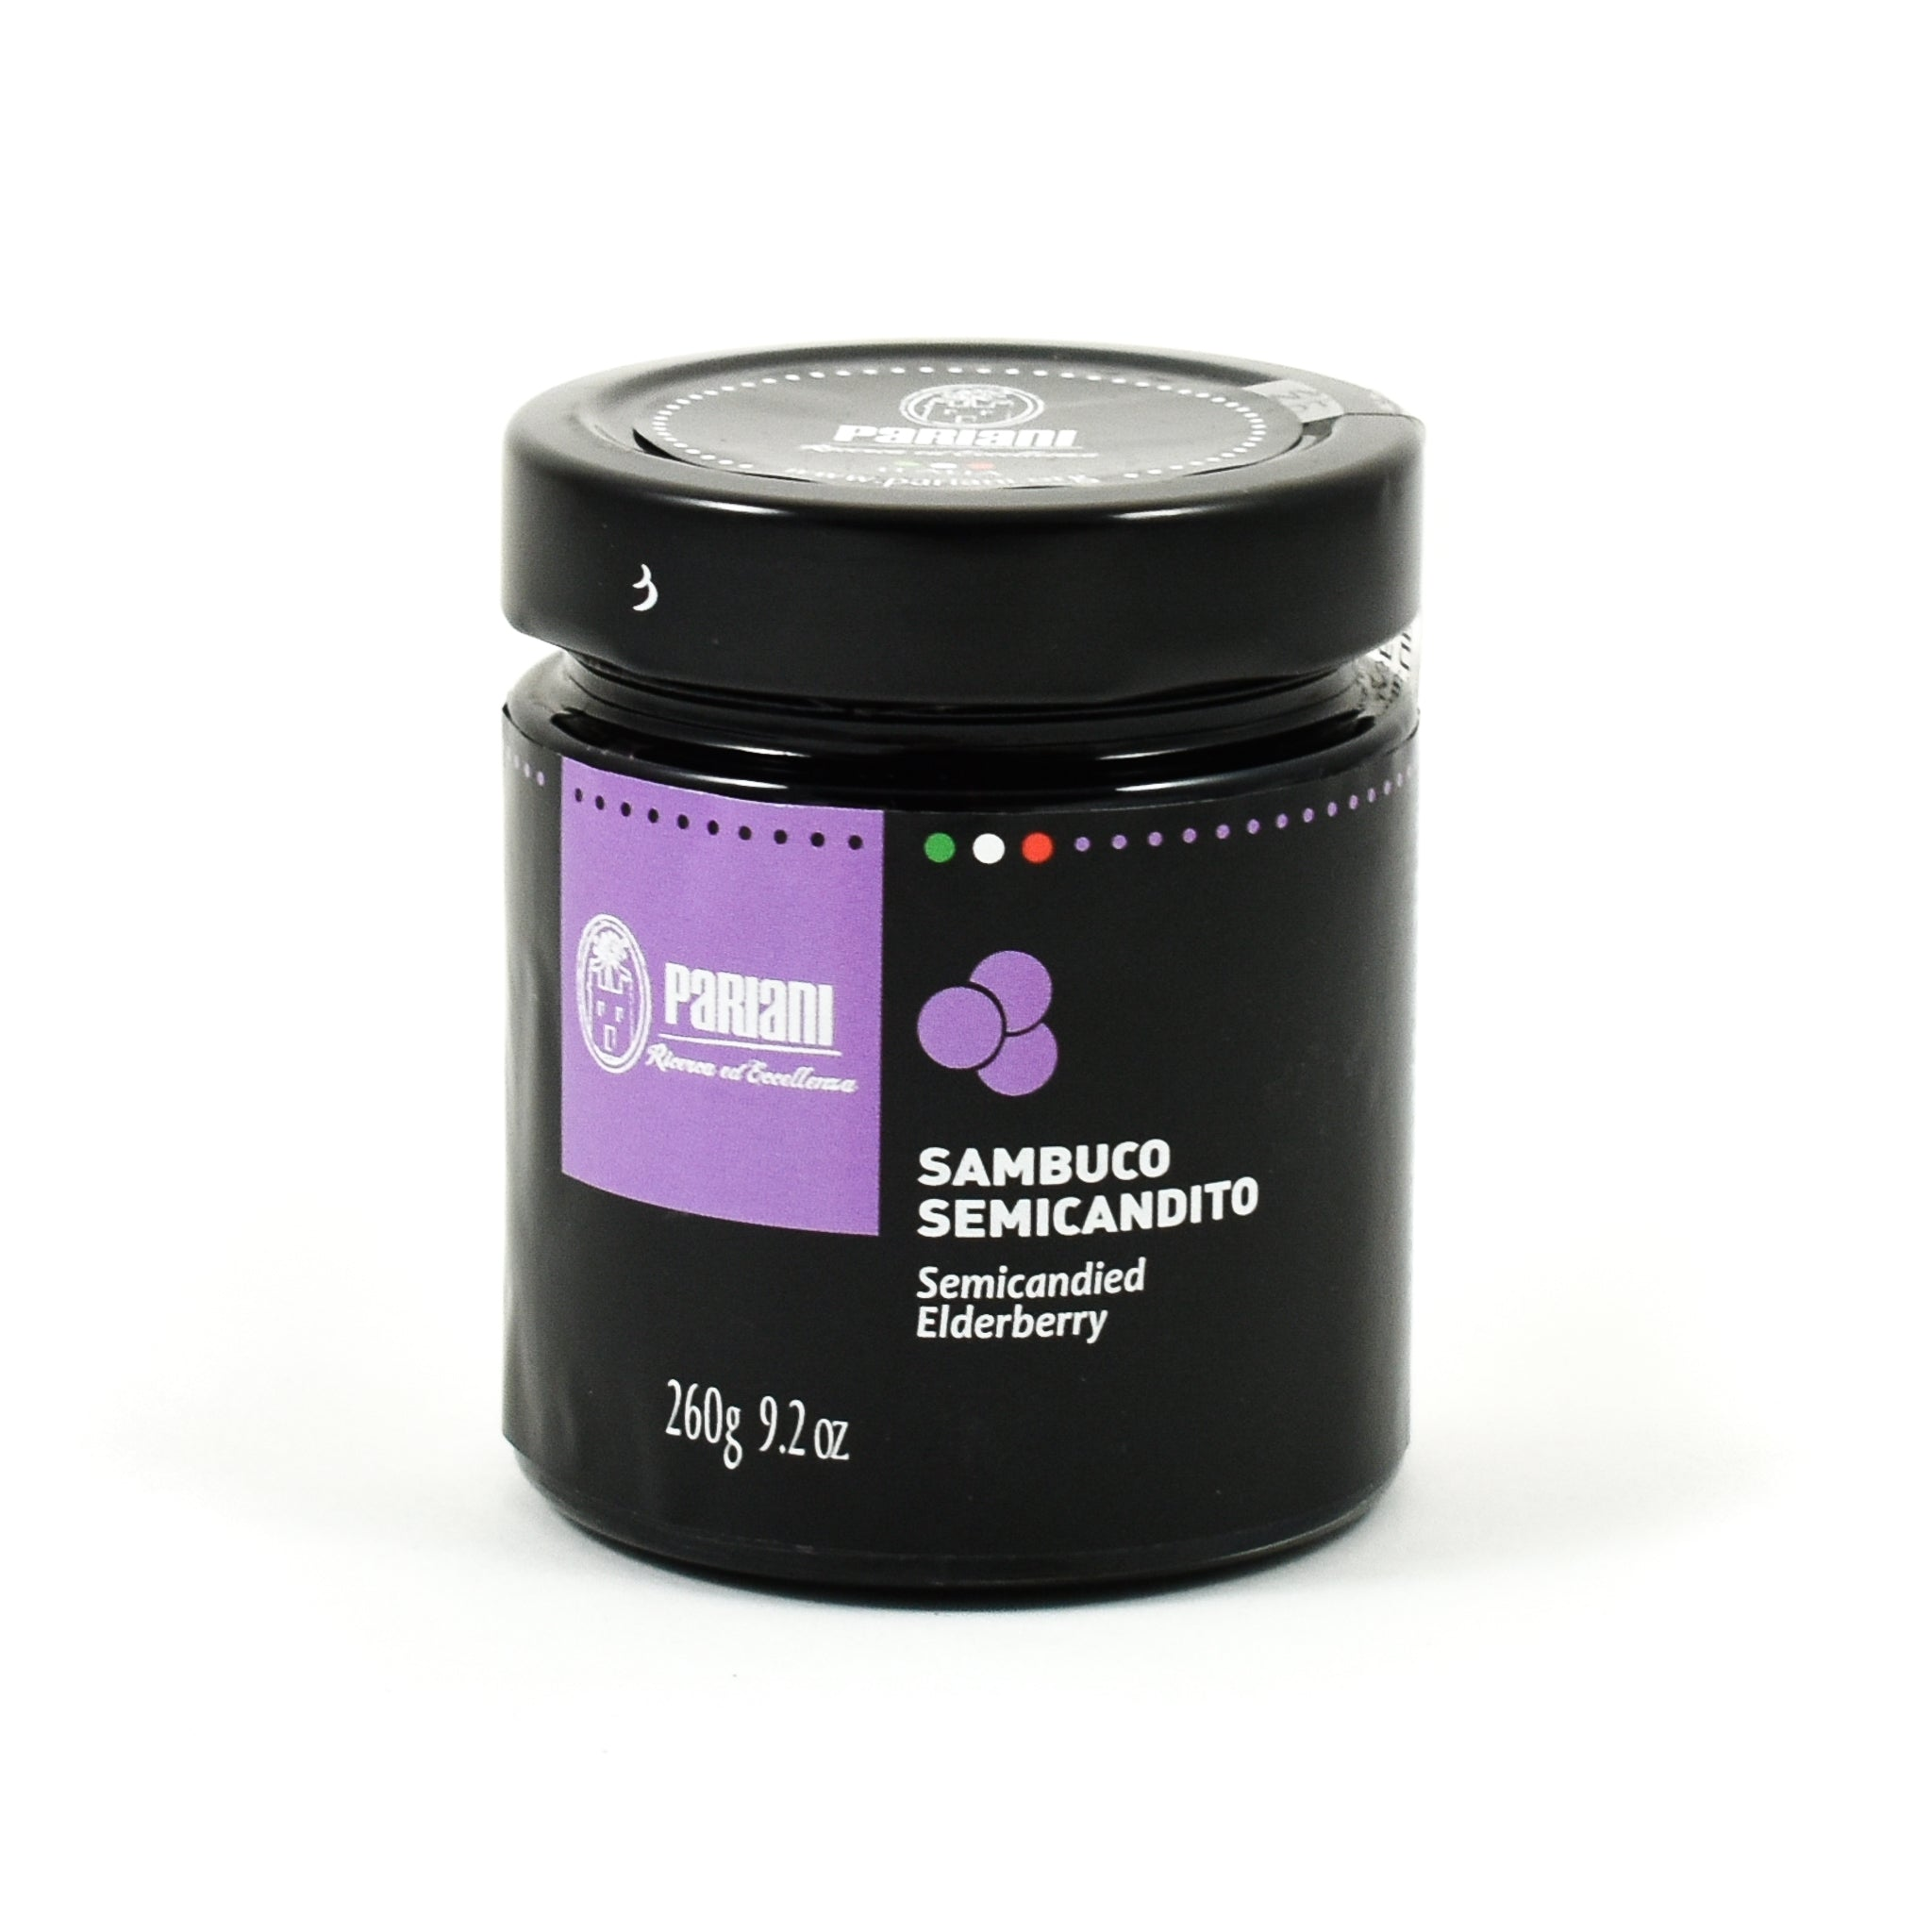 Pariani Semi-Candied Elderberries 260g Ingredients Jam Honey & Preserves Italian Food